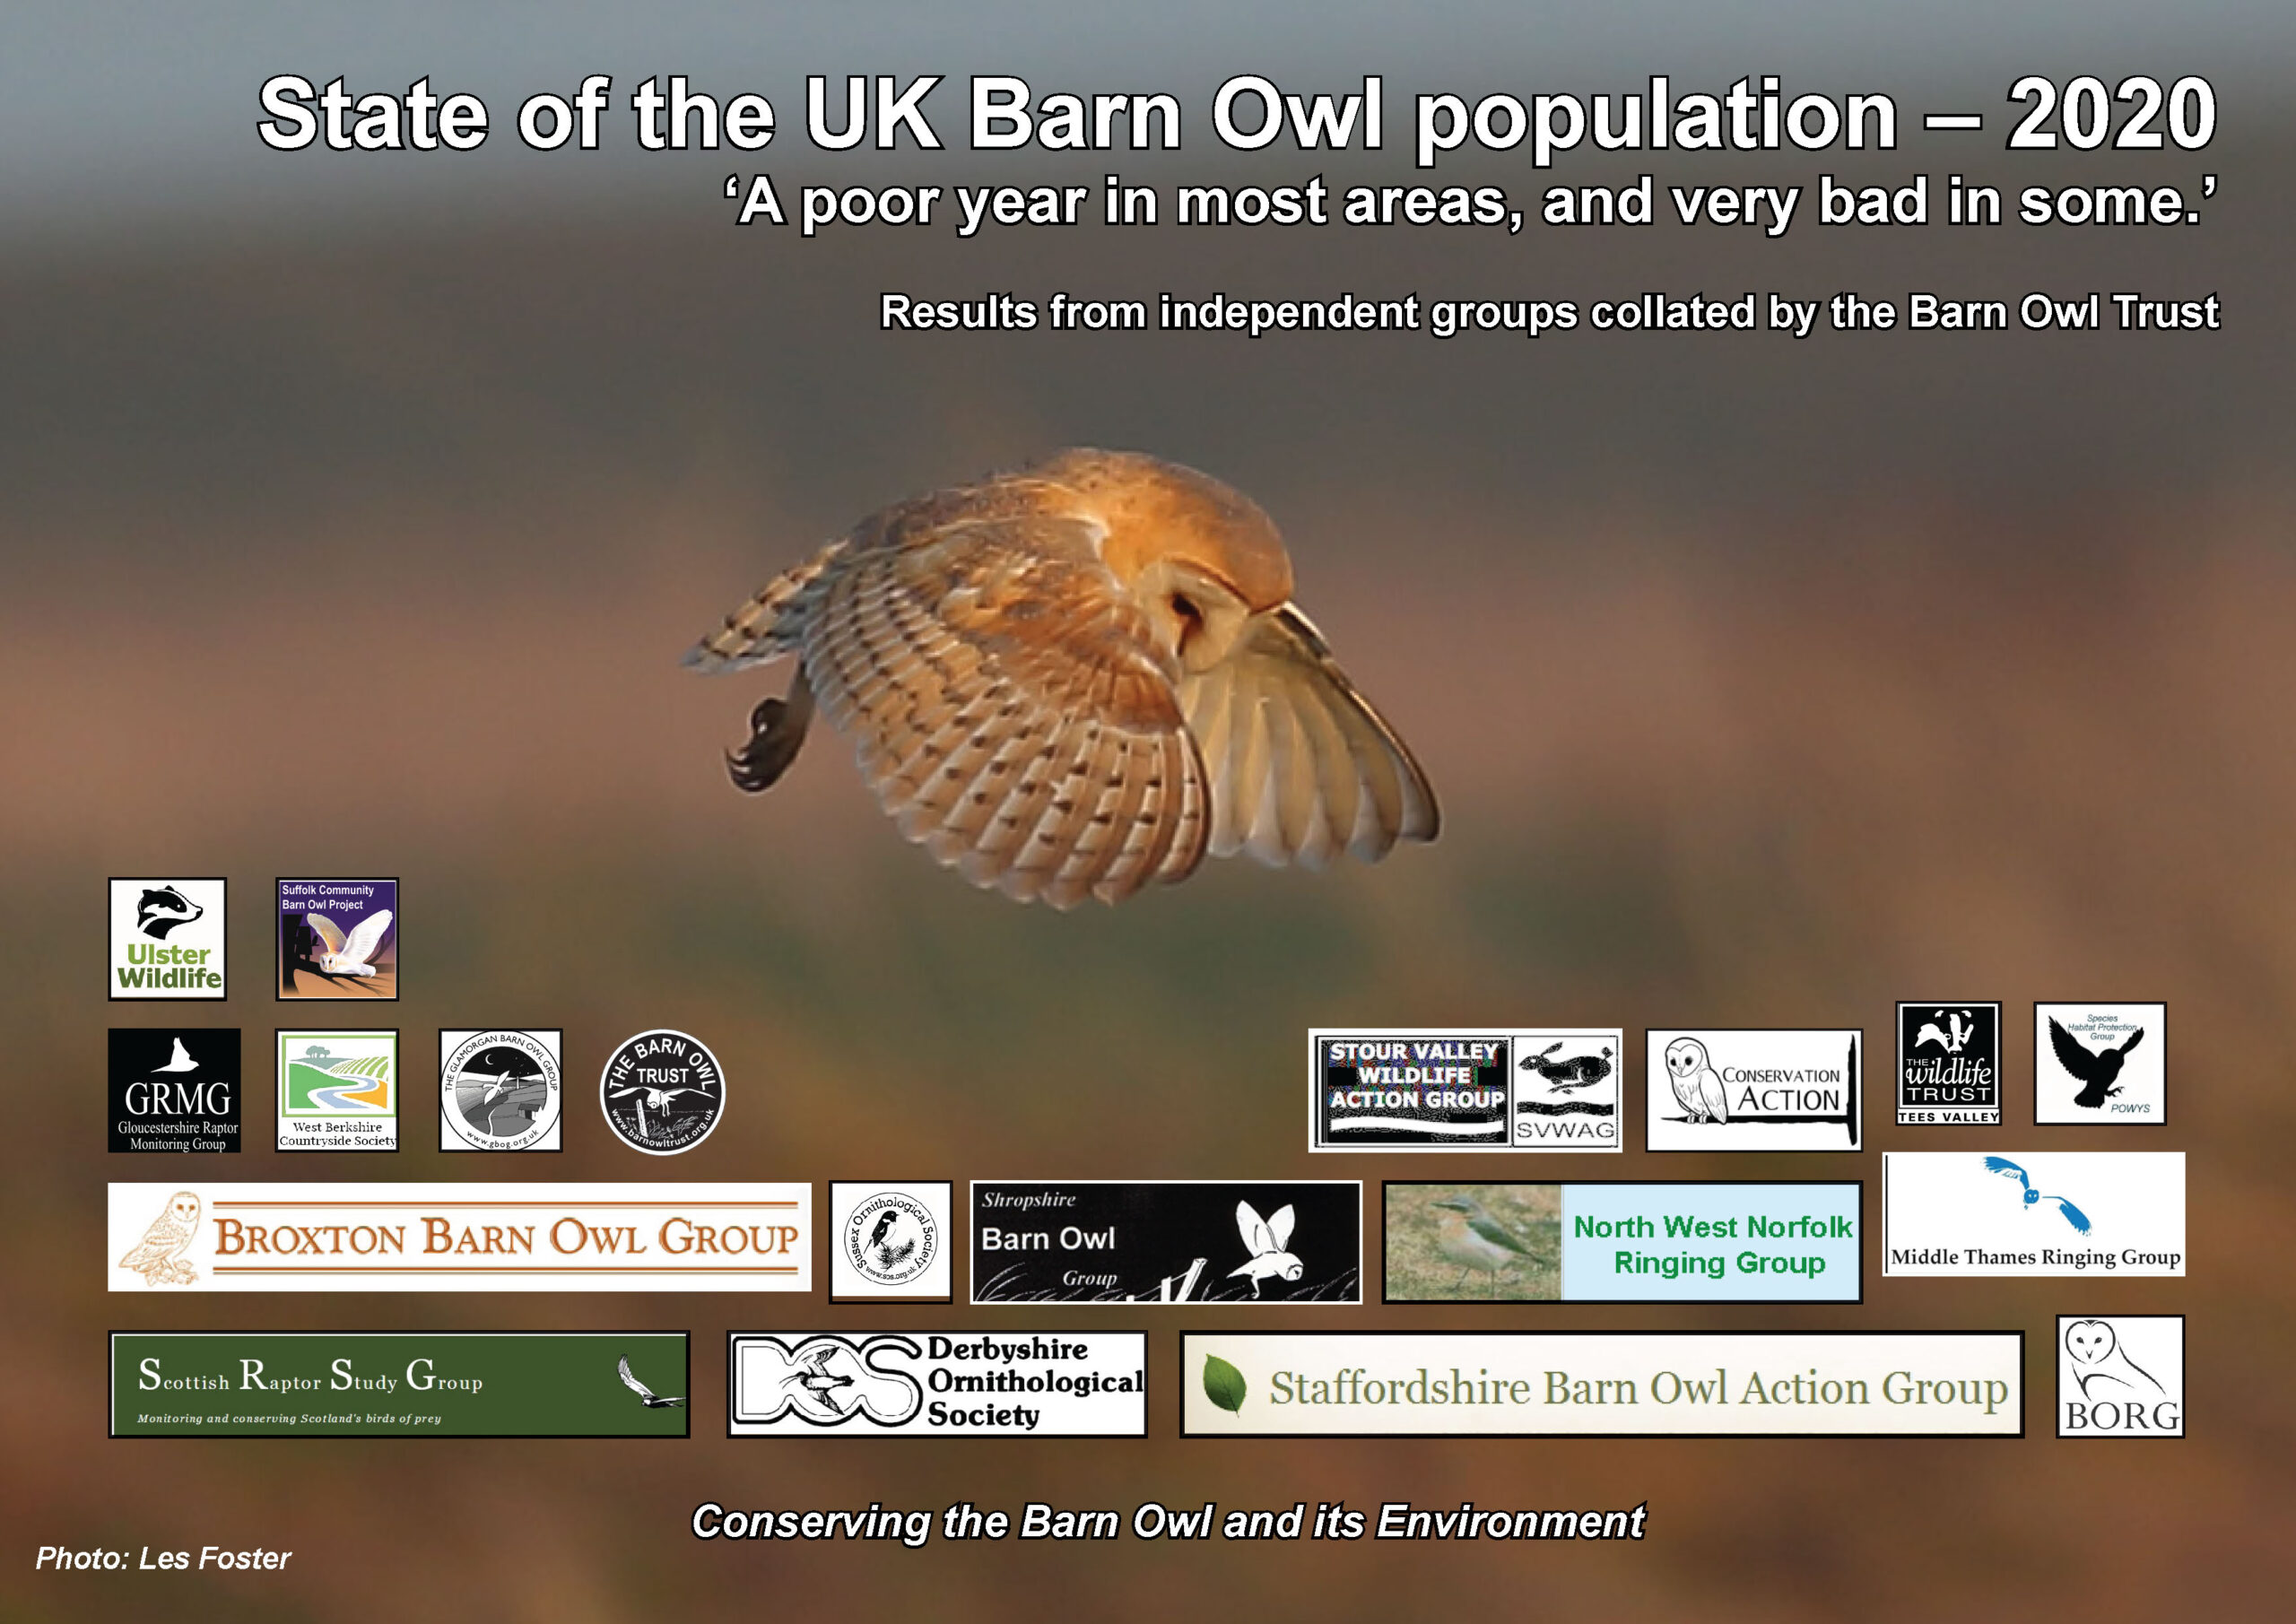 State of the UK Barn Owl Population 2020